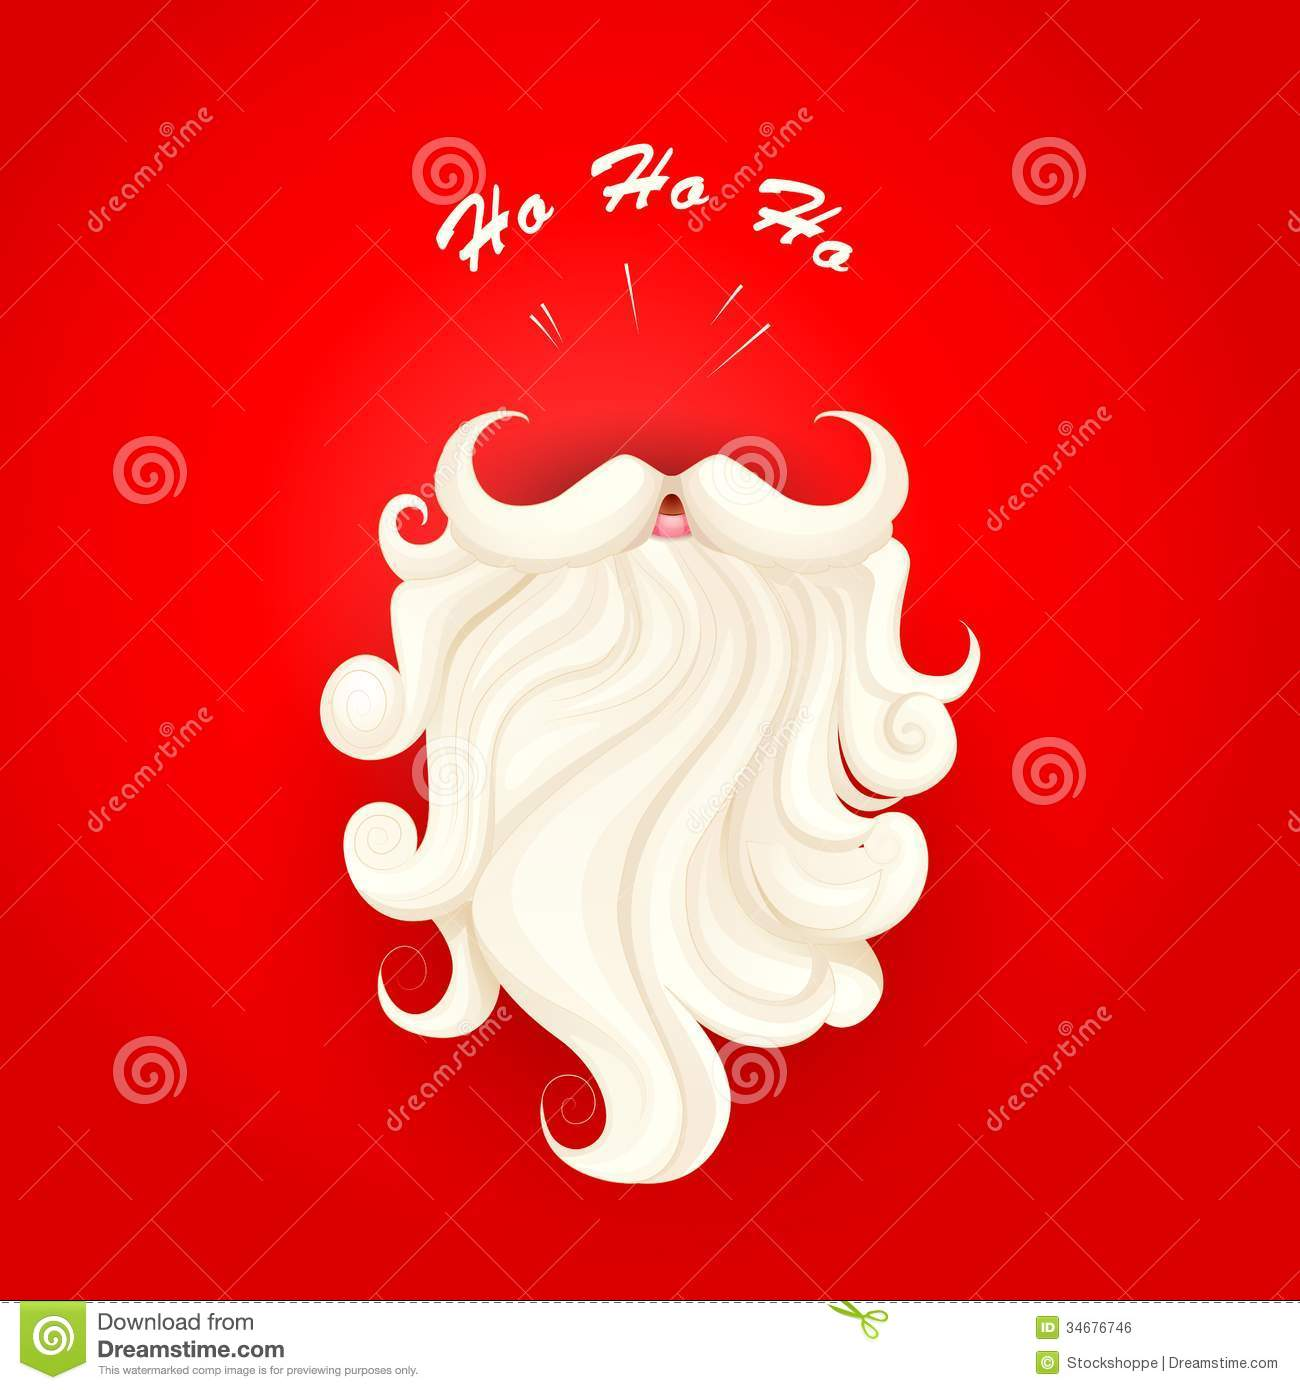 Santa Claus In Merry Christmas Royalty Free Stock Image - Image: 34676746 X 23 Costume